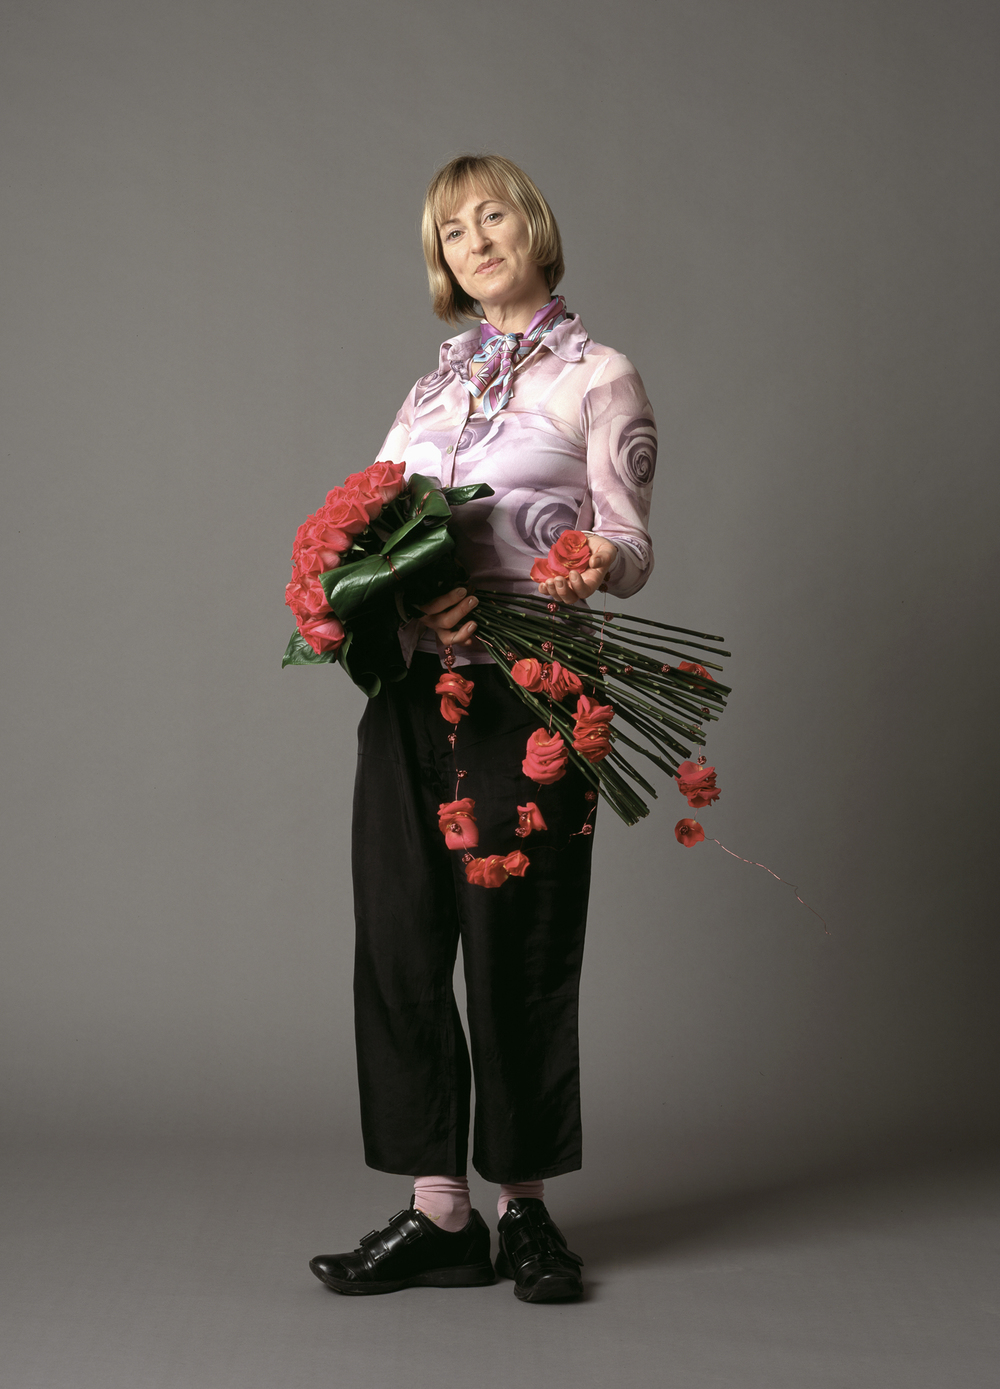 Jane Packer, Florist.  The Independent Magazine. Portrait by Anthony Oliver